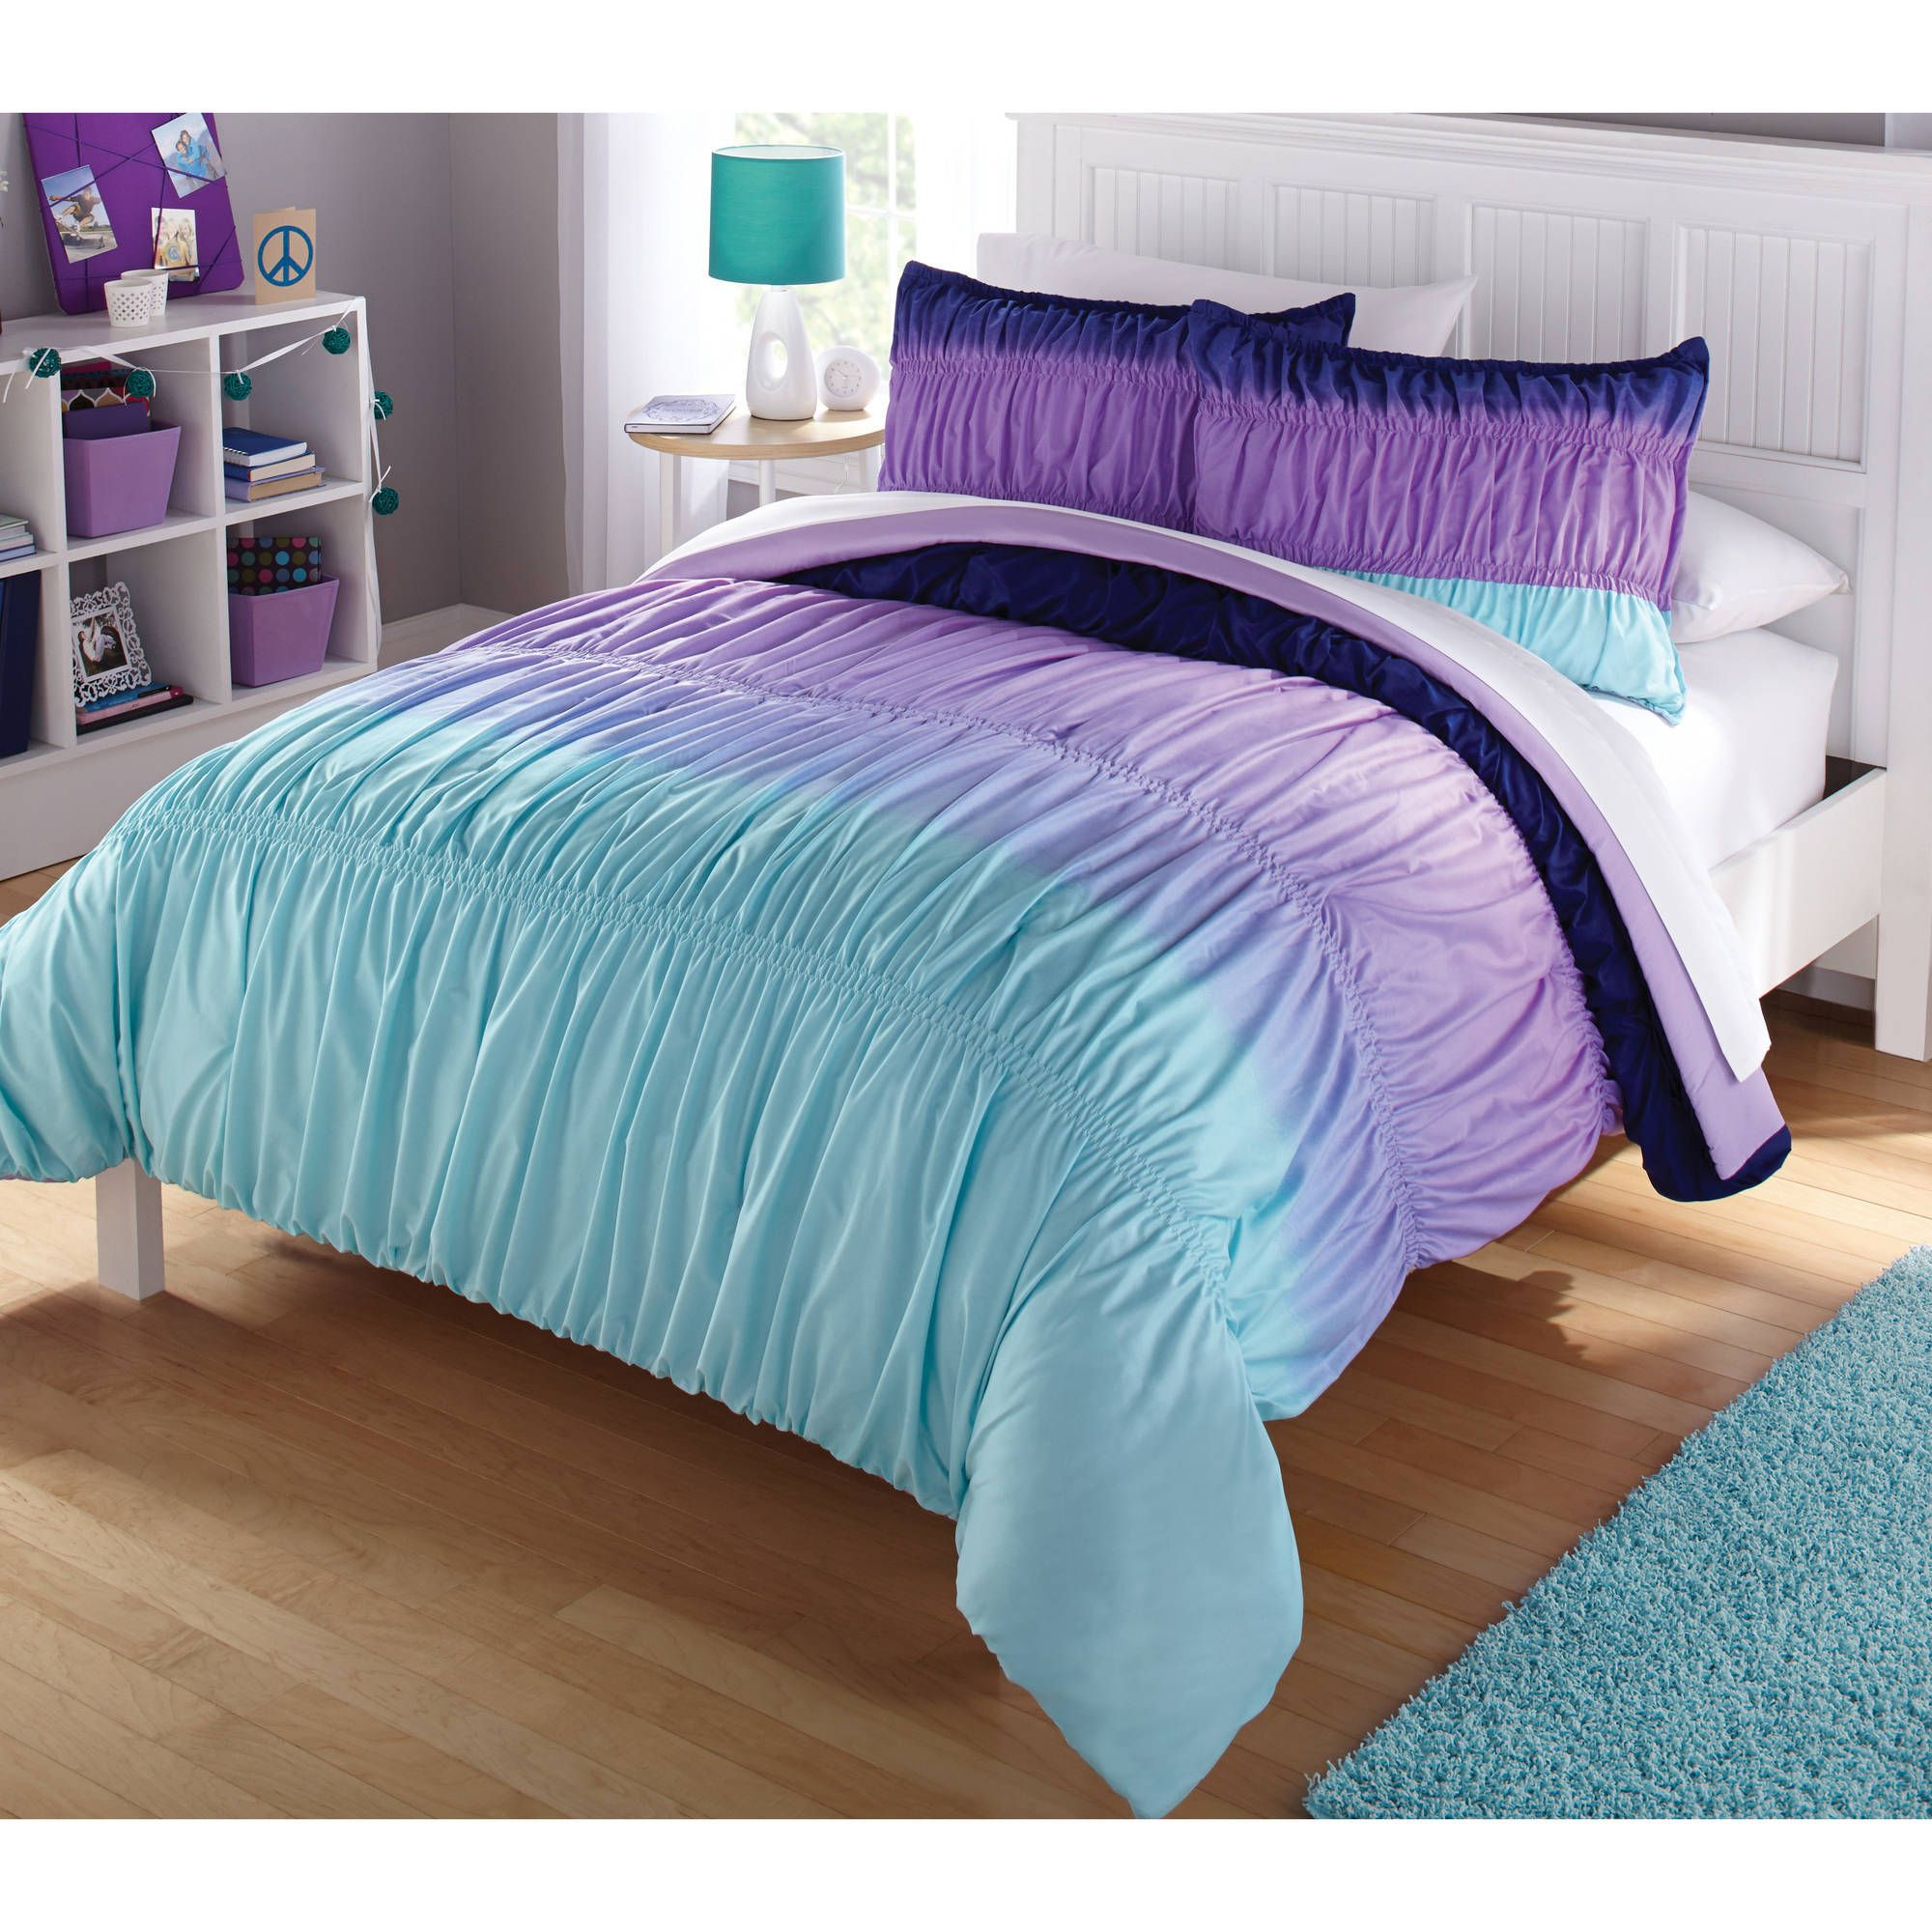 Plum Bedding Queen - Latitude ombre ruched reversible complete bedding set purple